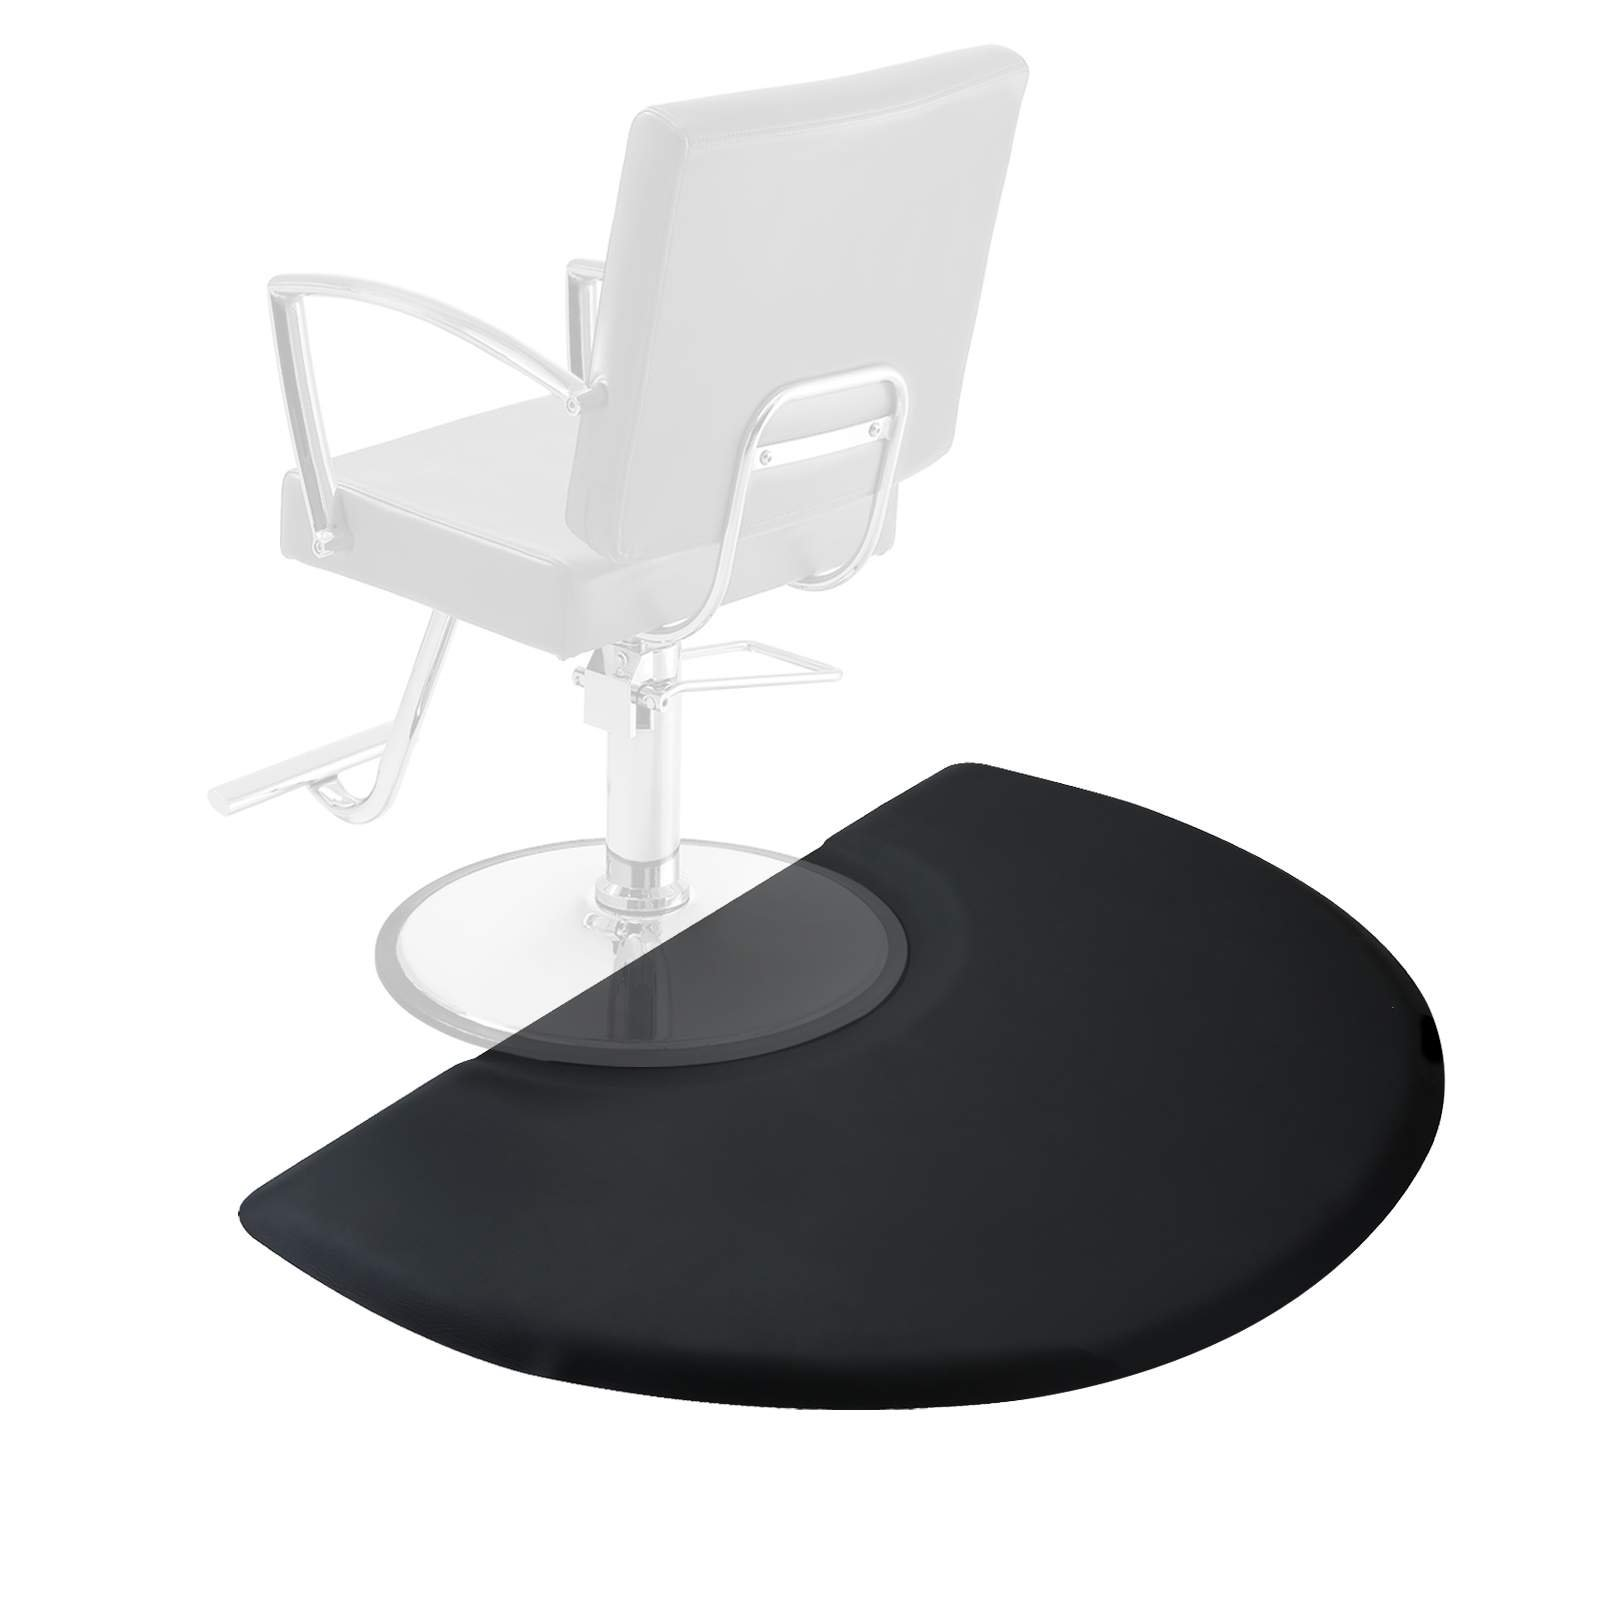 Saloniture 3 ft. x 4 ft. Salon & Barber Shop Chair Anti-Fatigue Mat - Black Semi Circle - 1 in. Thick by Saloniture